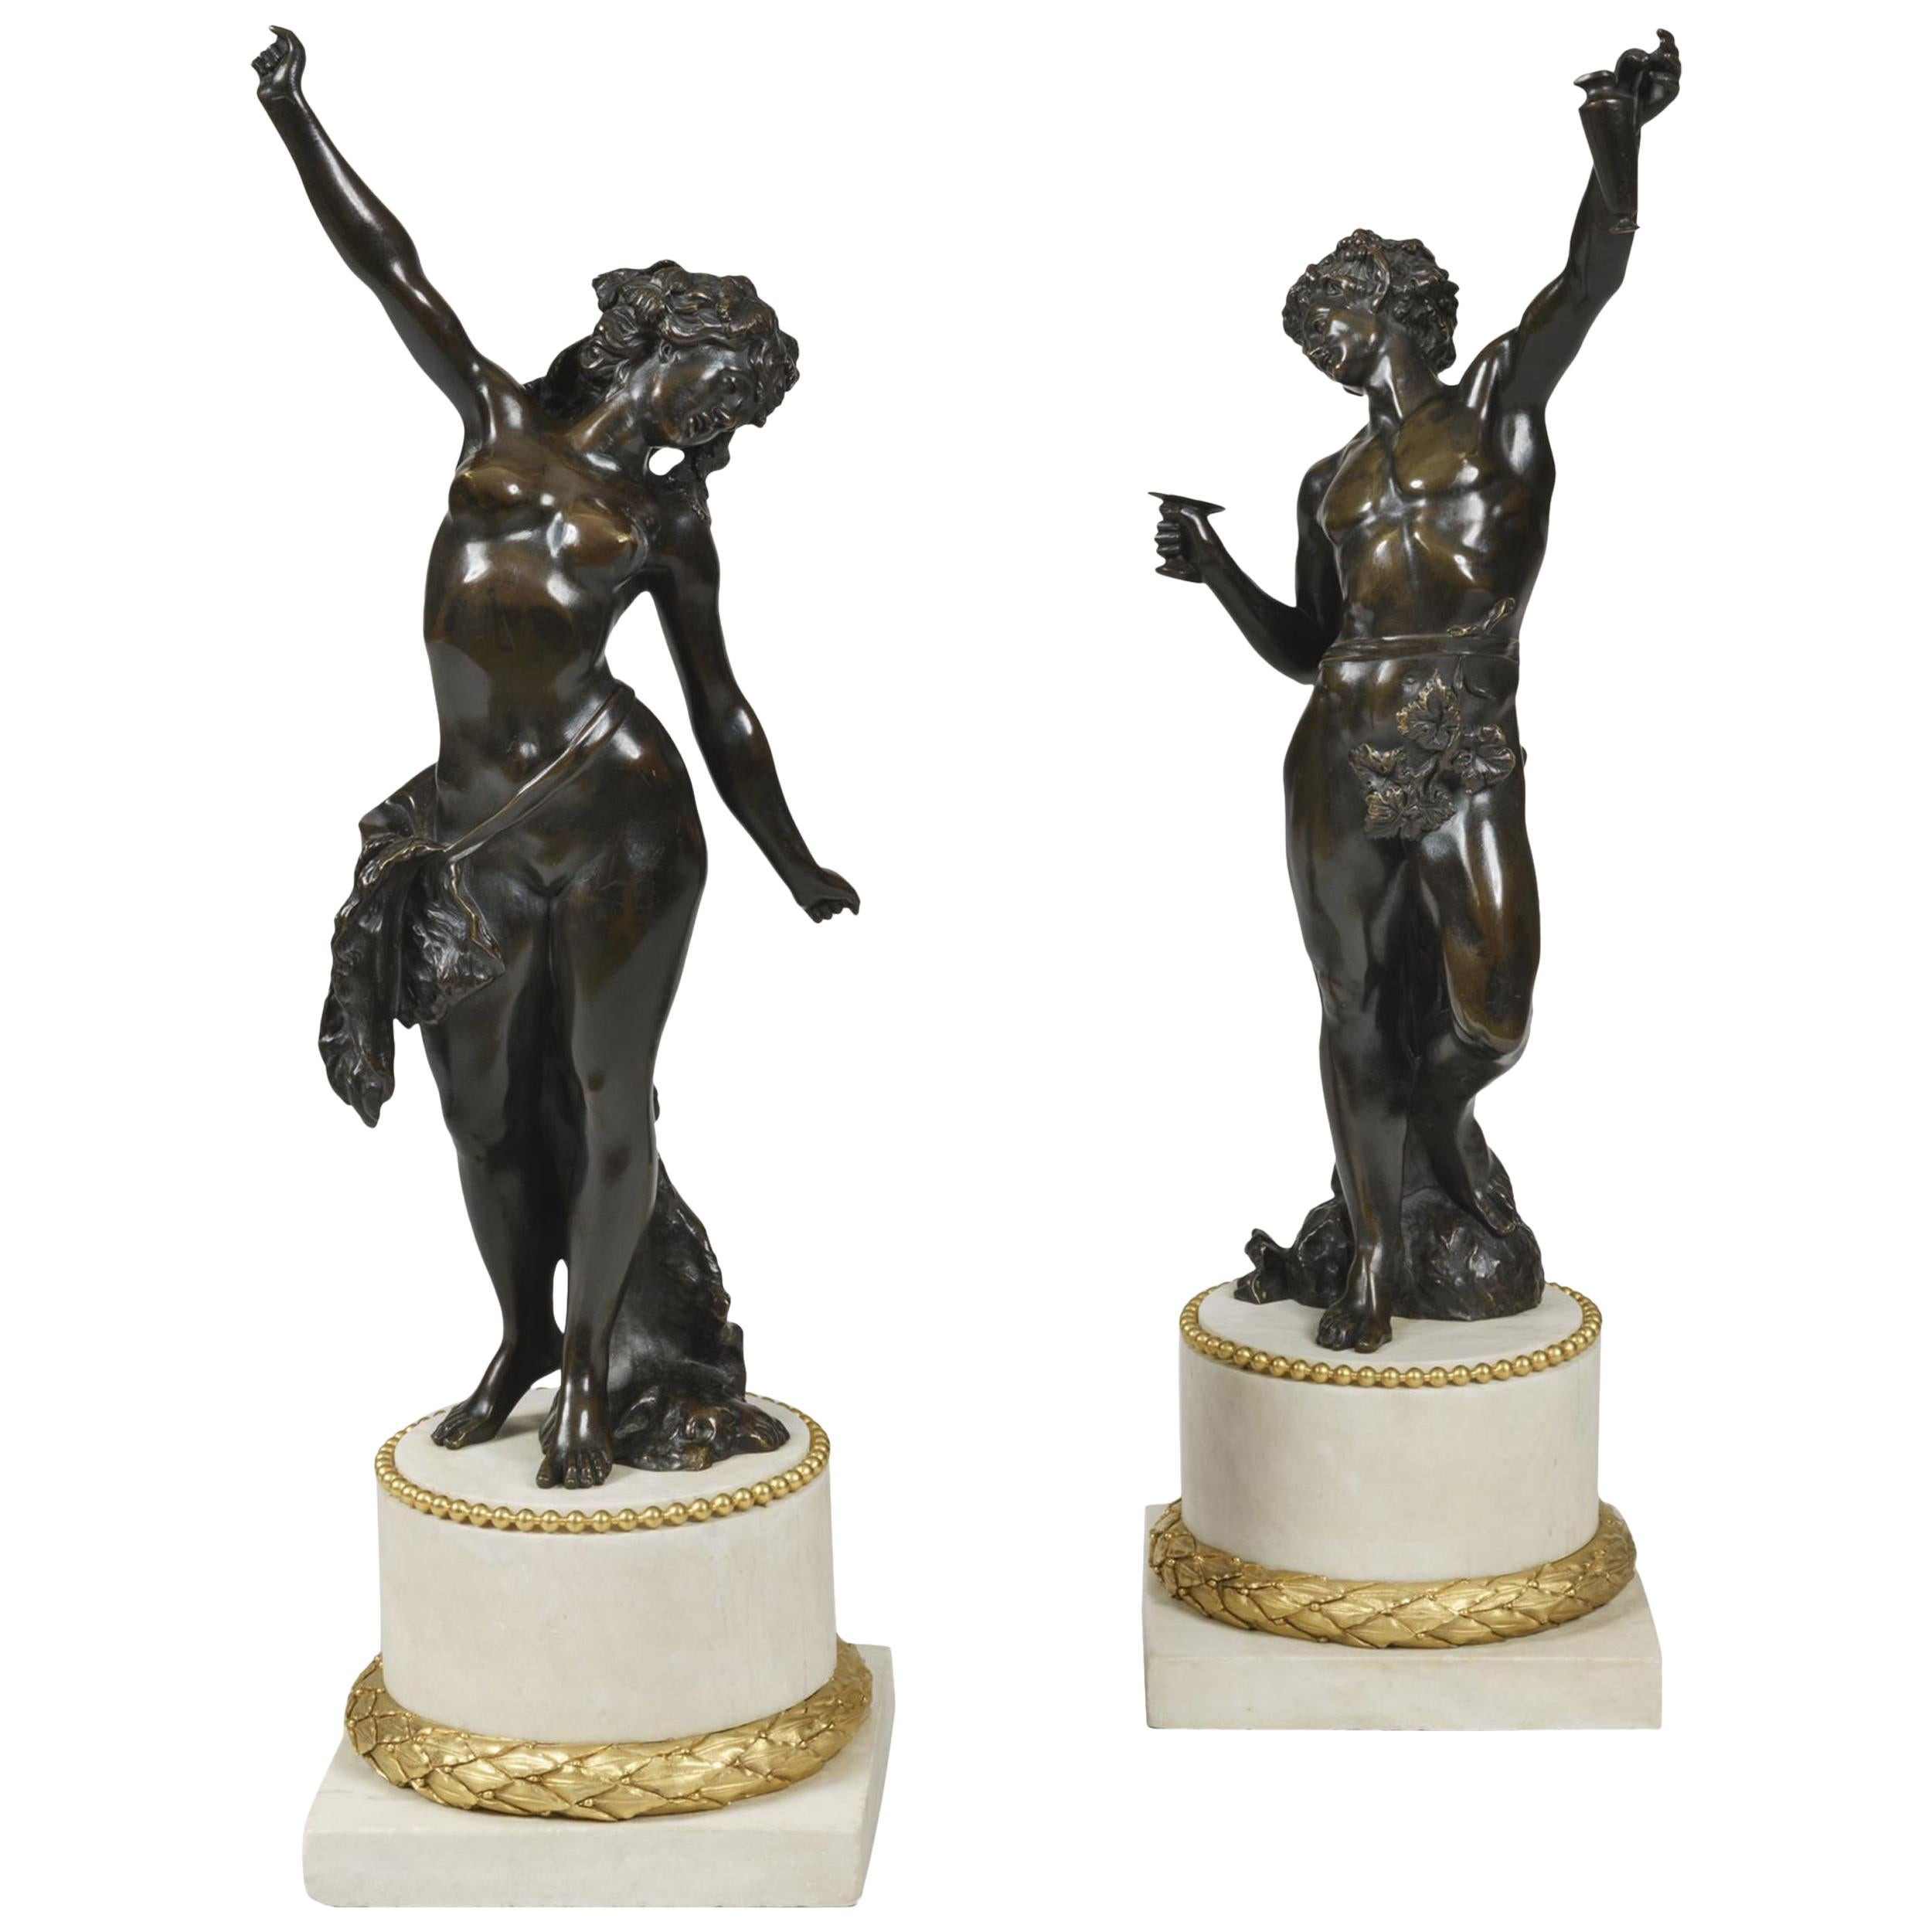 19th Century Pair of Bronze Statues after Models by Clodion